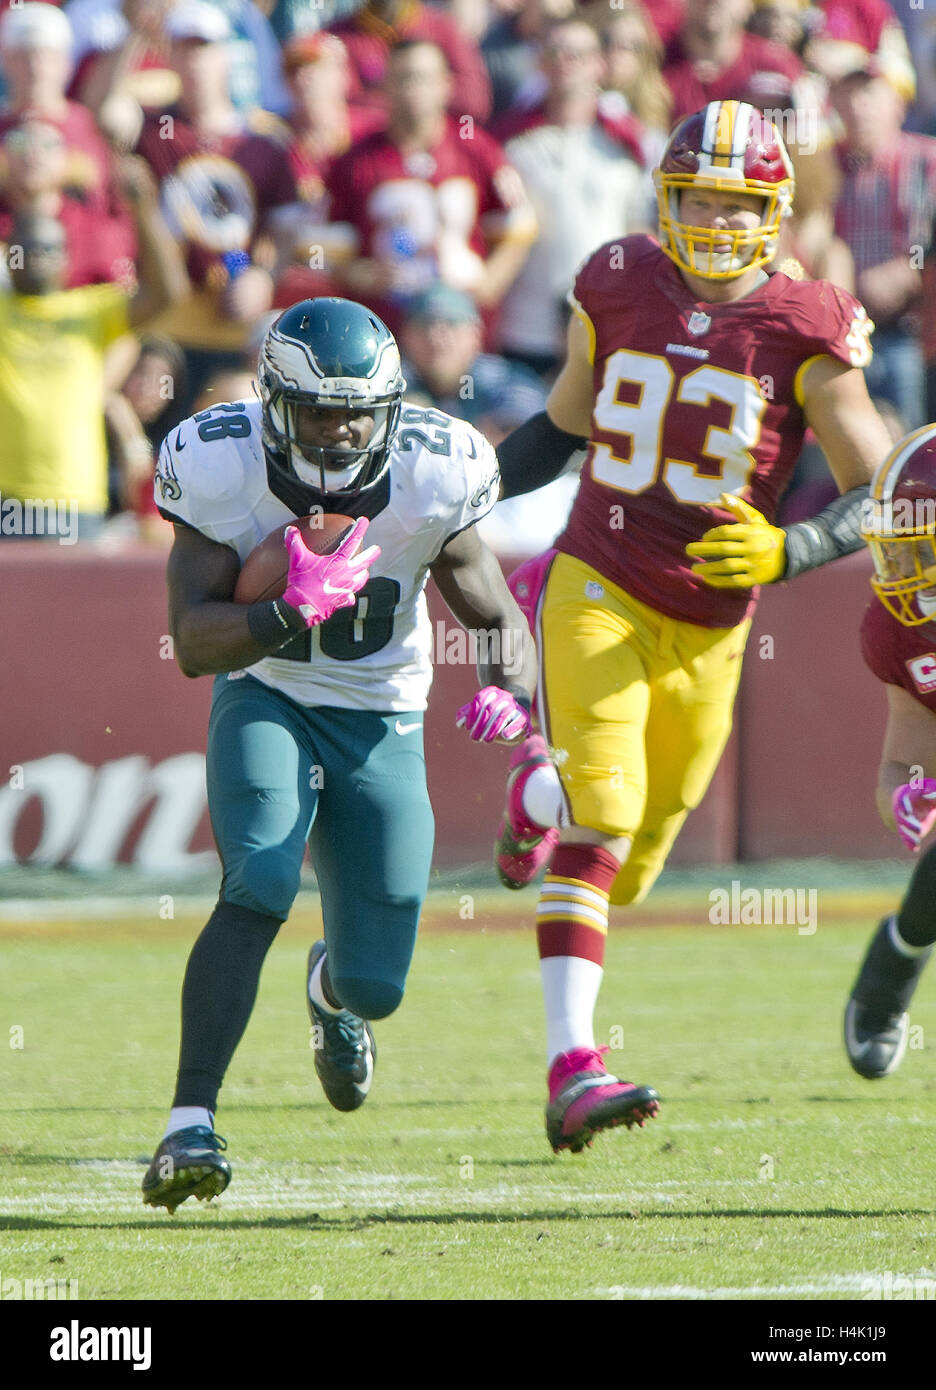 Landover, Maryland, USA. 16th Oct, 2016. Philadelphia Eagles running back Wendell Smallwood (28) carries the ball - Stock Image